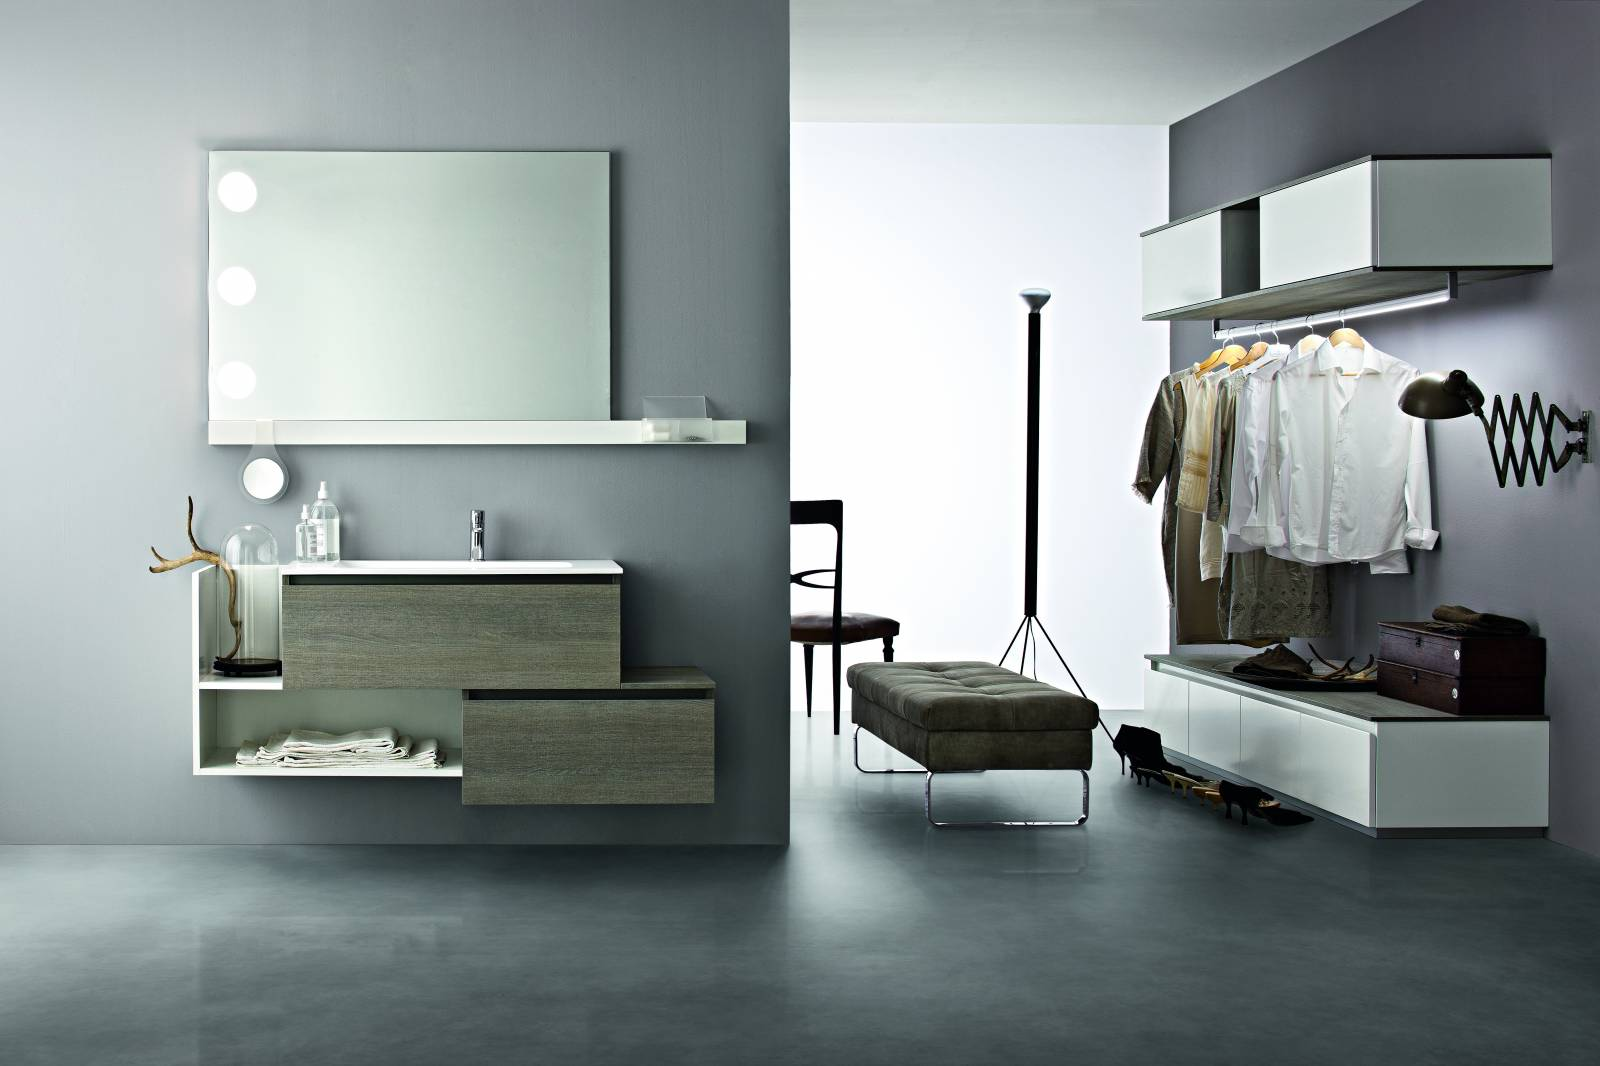 cr ation de salle de bain montpellier carr d 39 eau. Black Bedroom Furniture Sets. Home Design Ideas